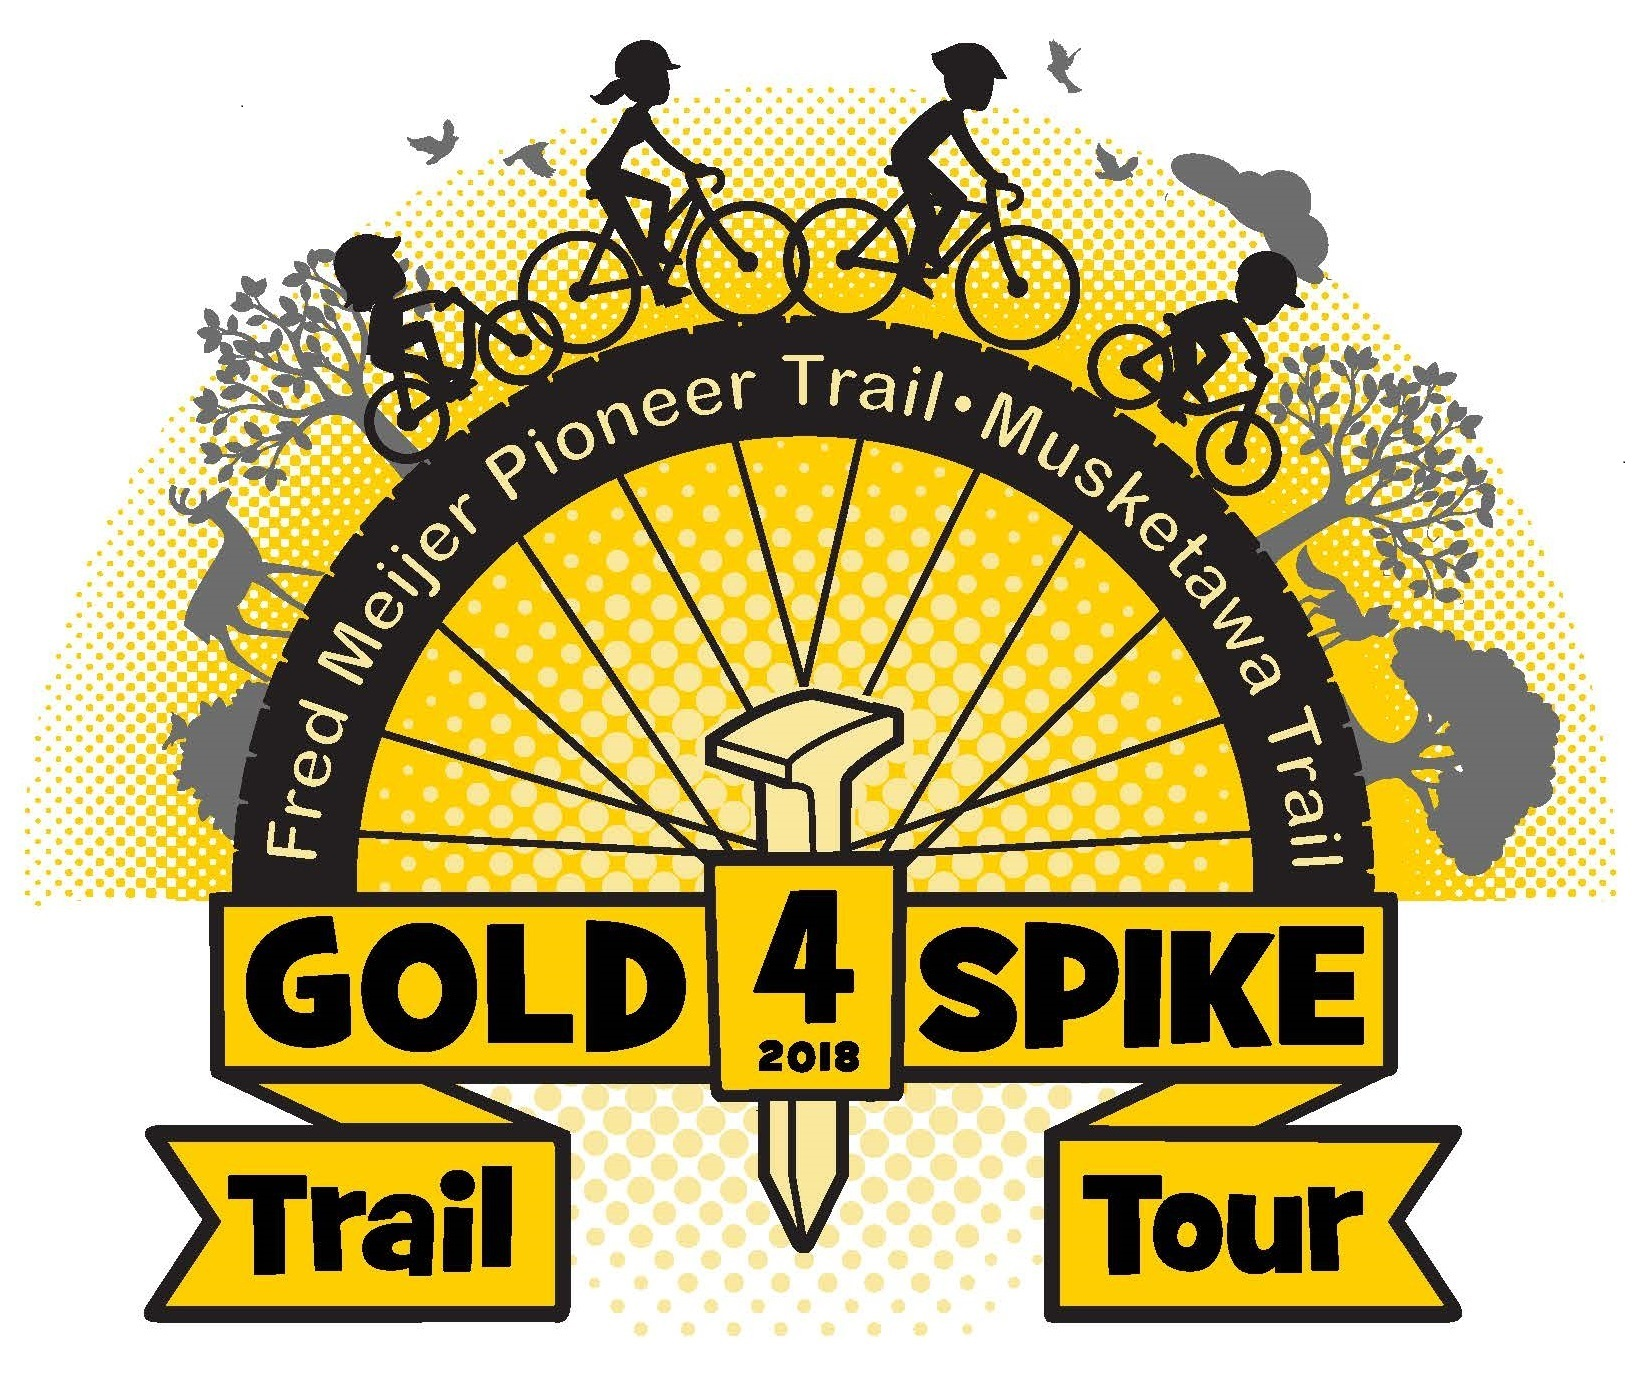 Register for the Gold Spike Trail Tour IV